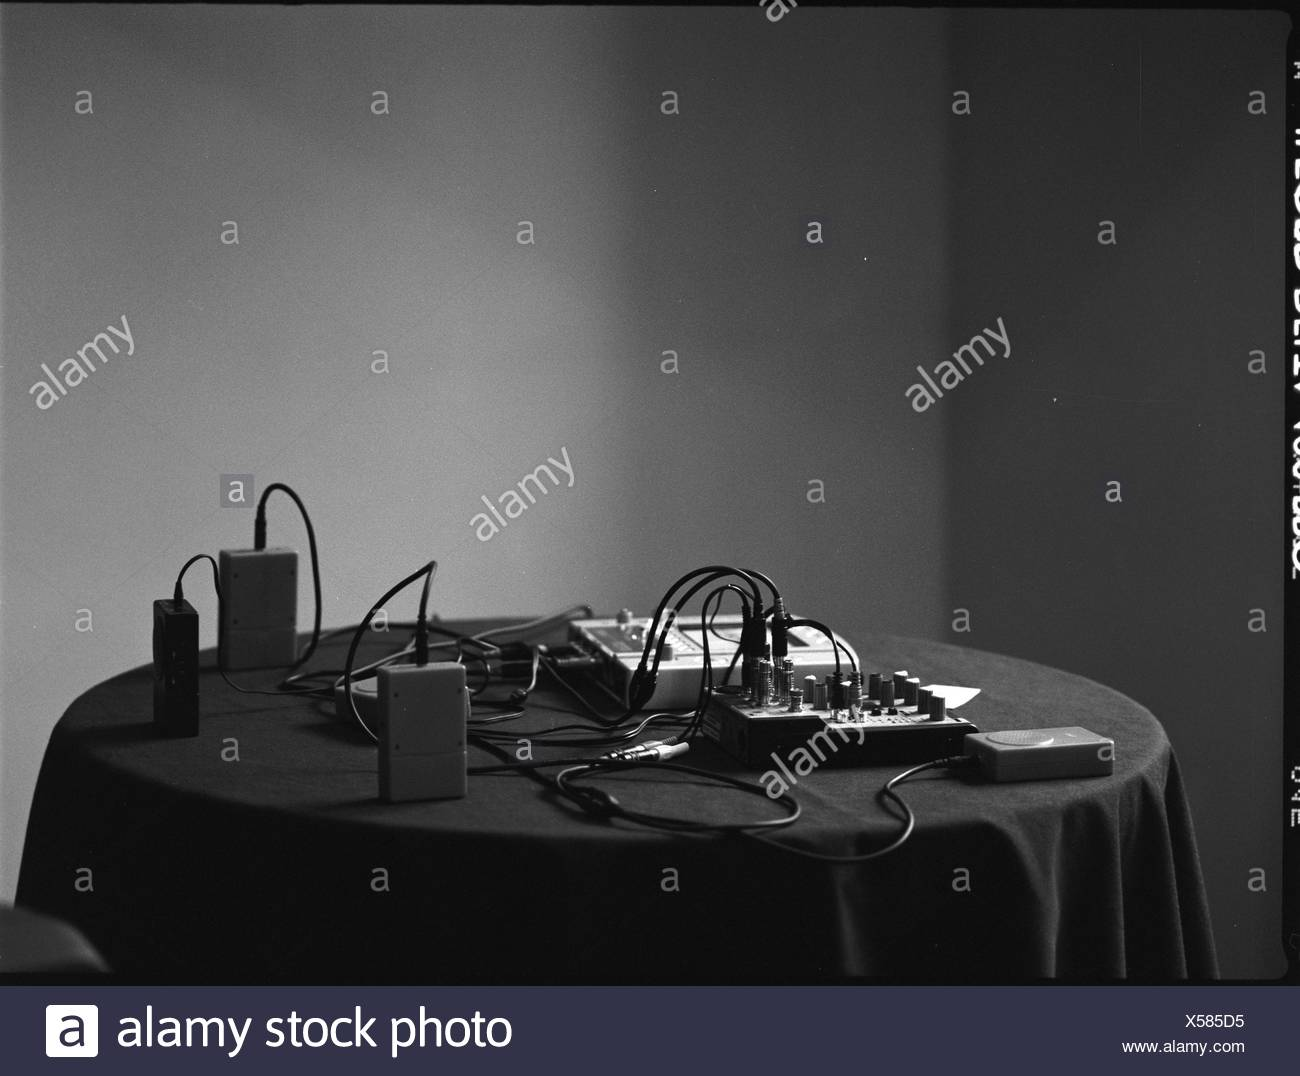 Recording Equipment On Able - Stock Image